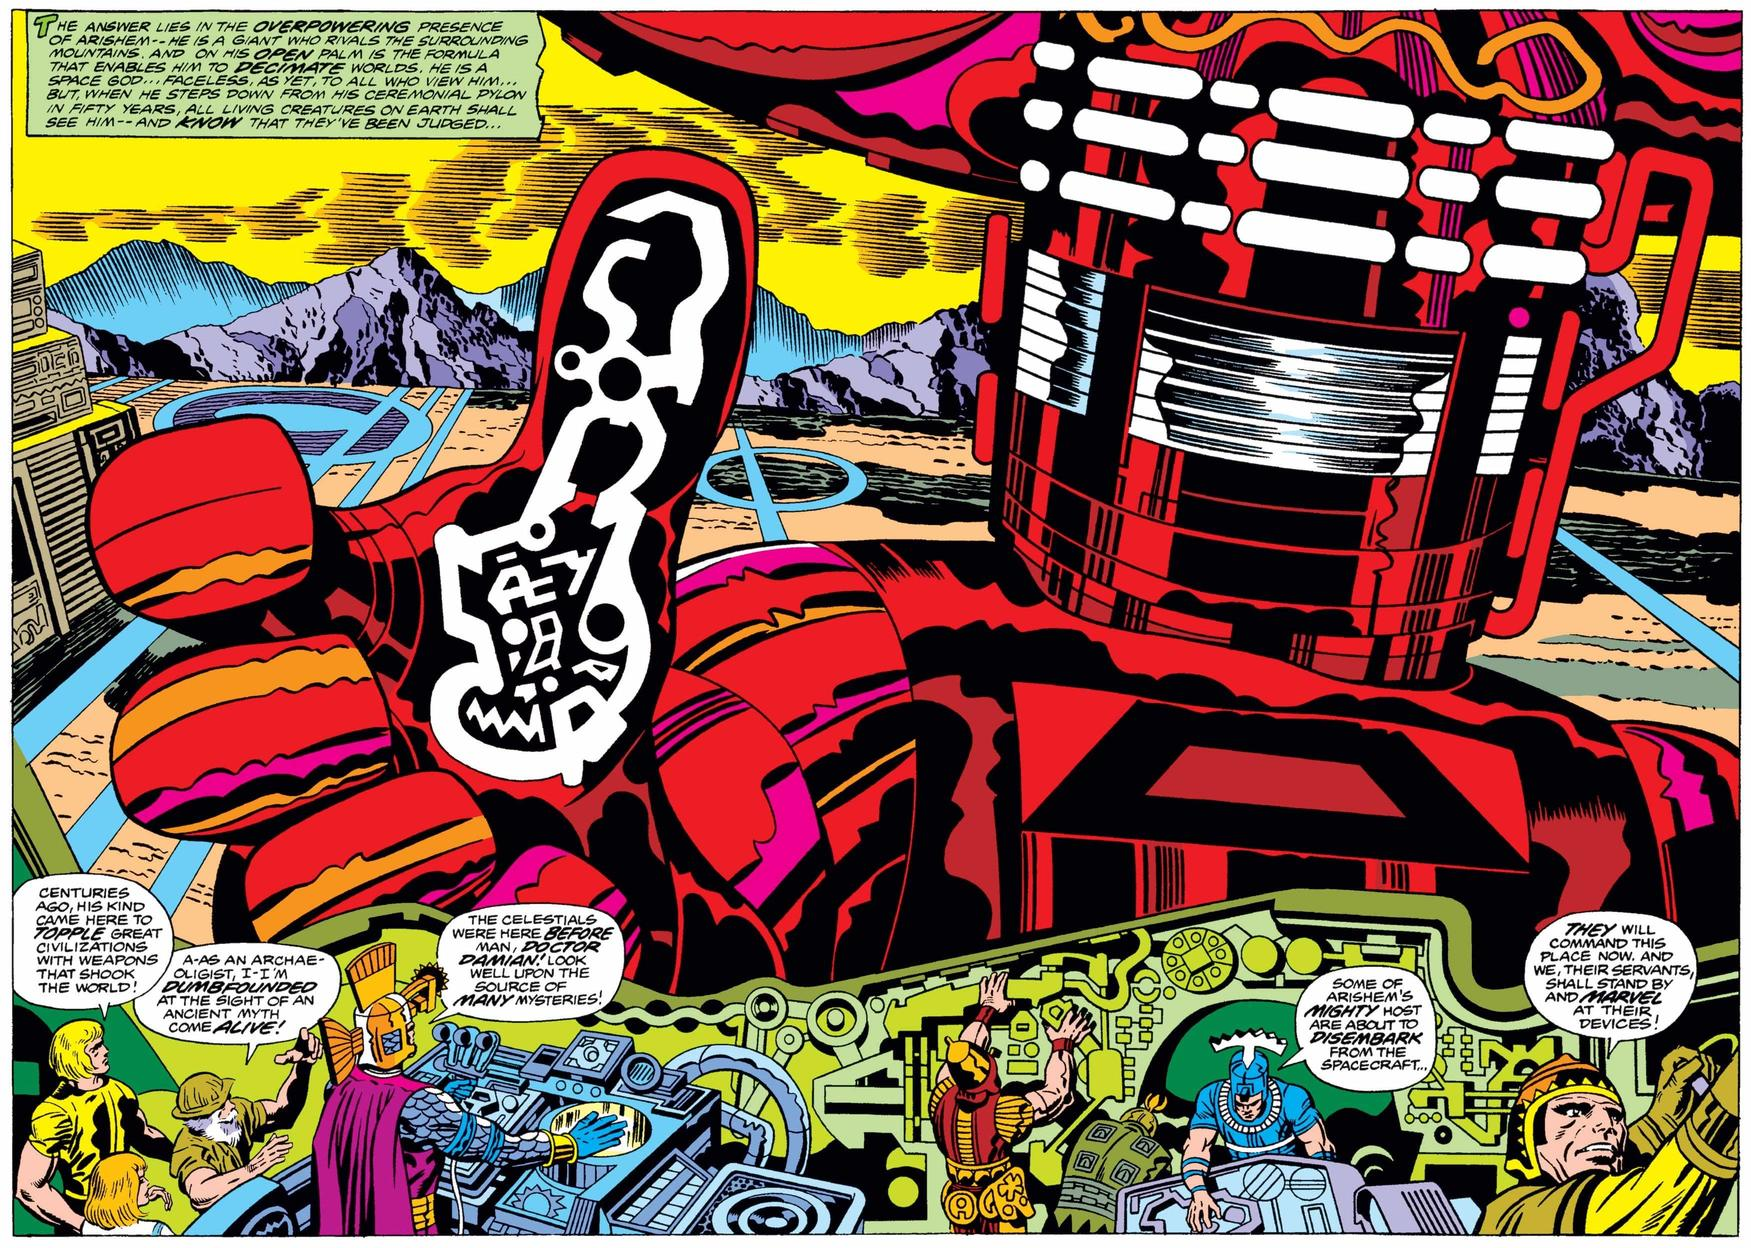 THE ETERNALS (1976) #3, PAGES 2-3